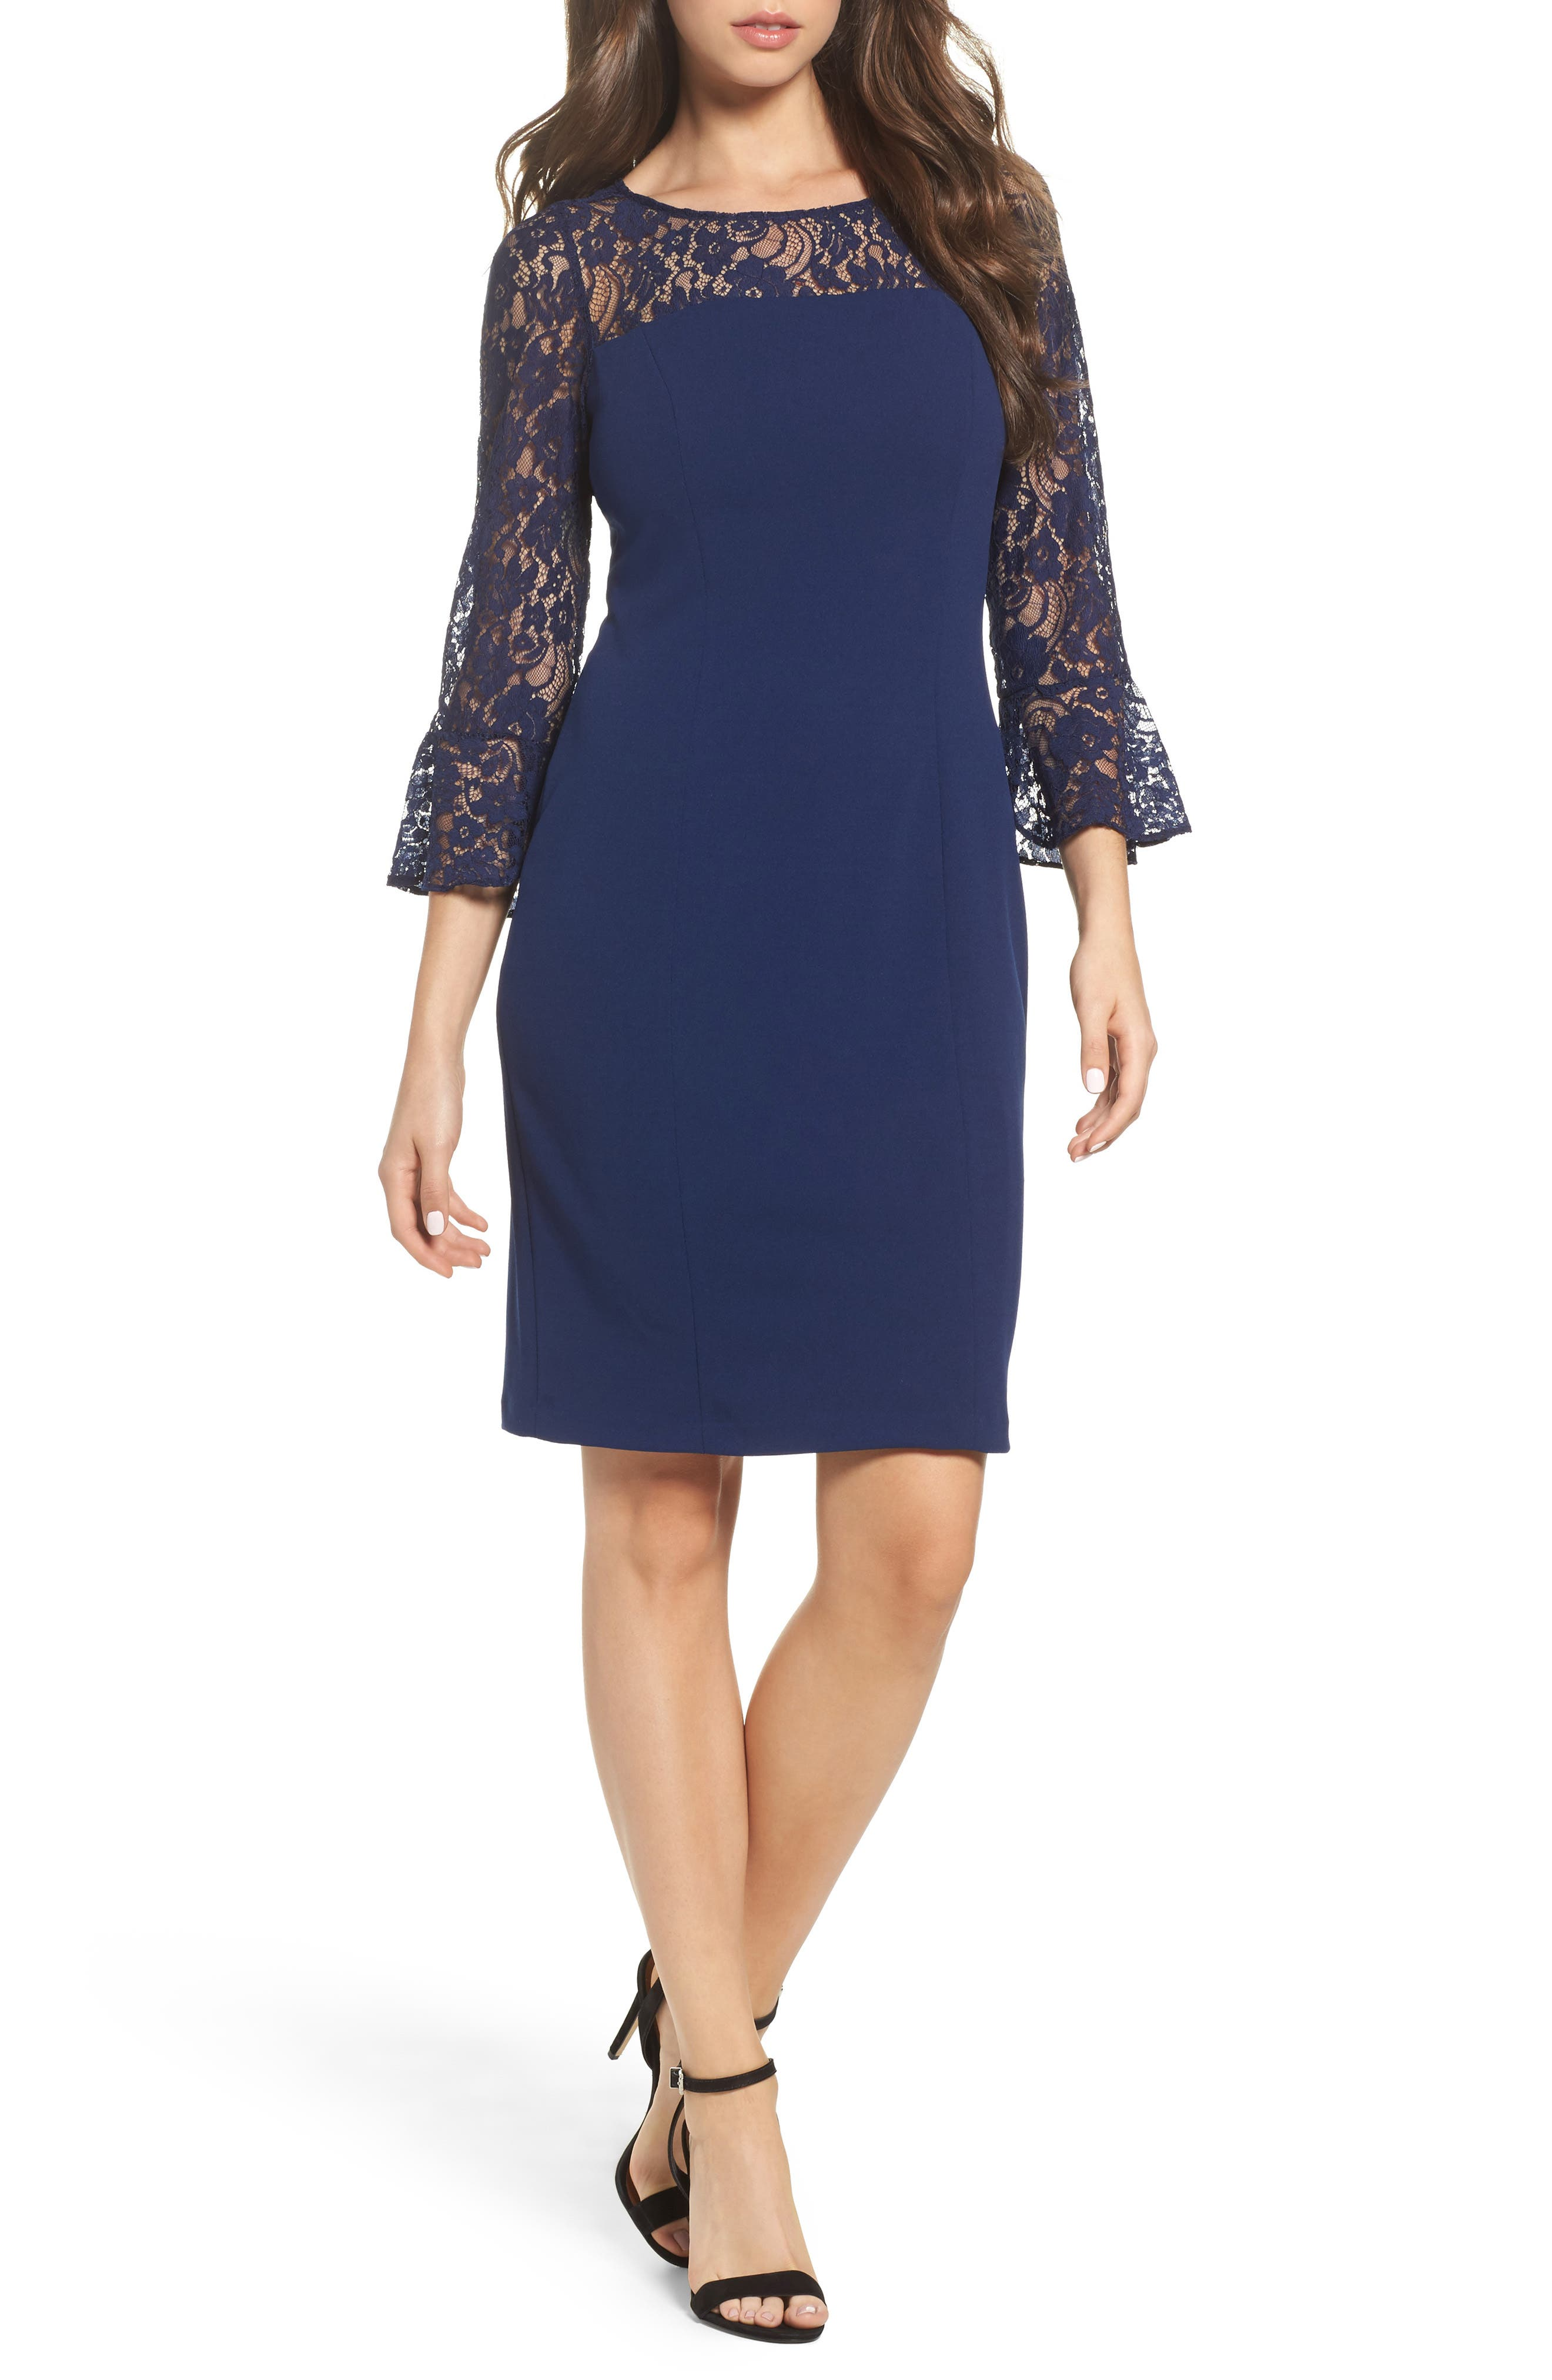 Alternate Image 1 Selected - Adrianna Papell Lace & Crepe Dress